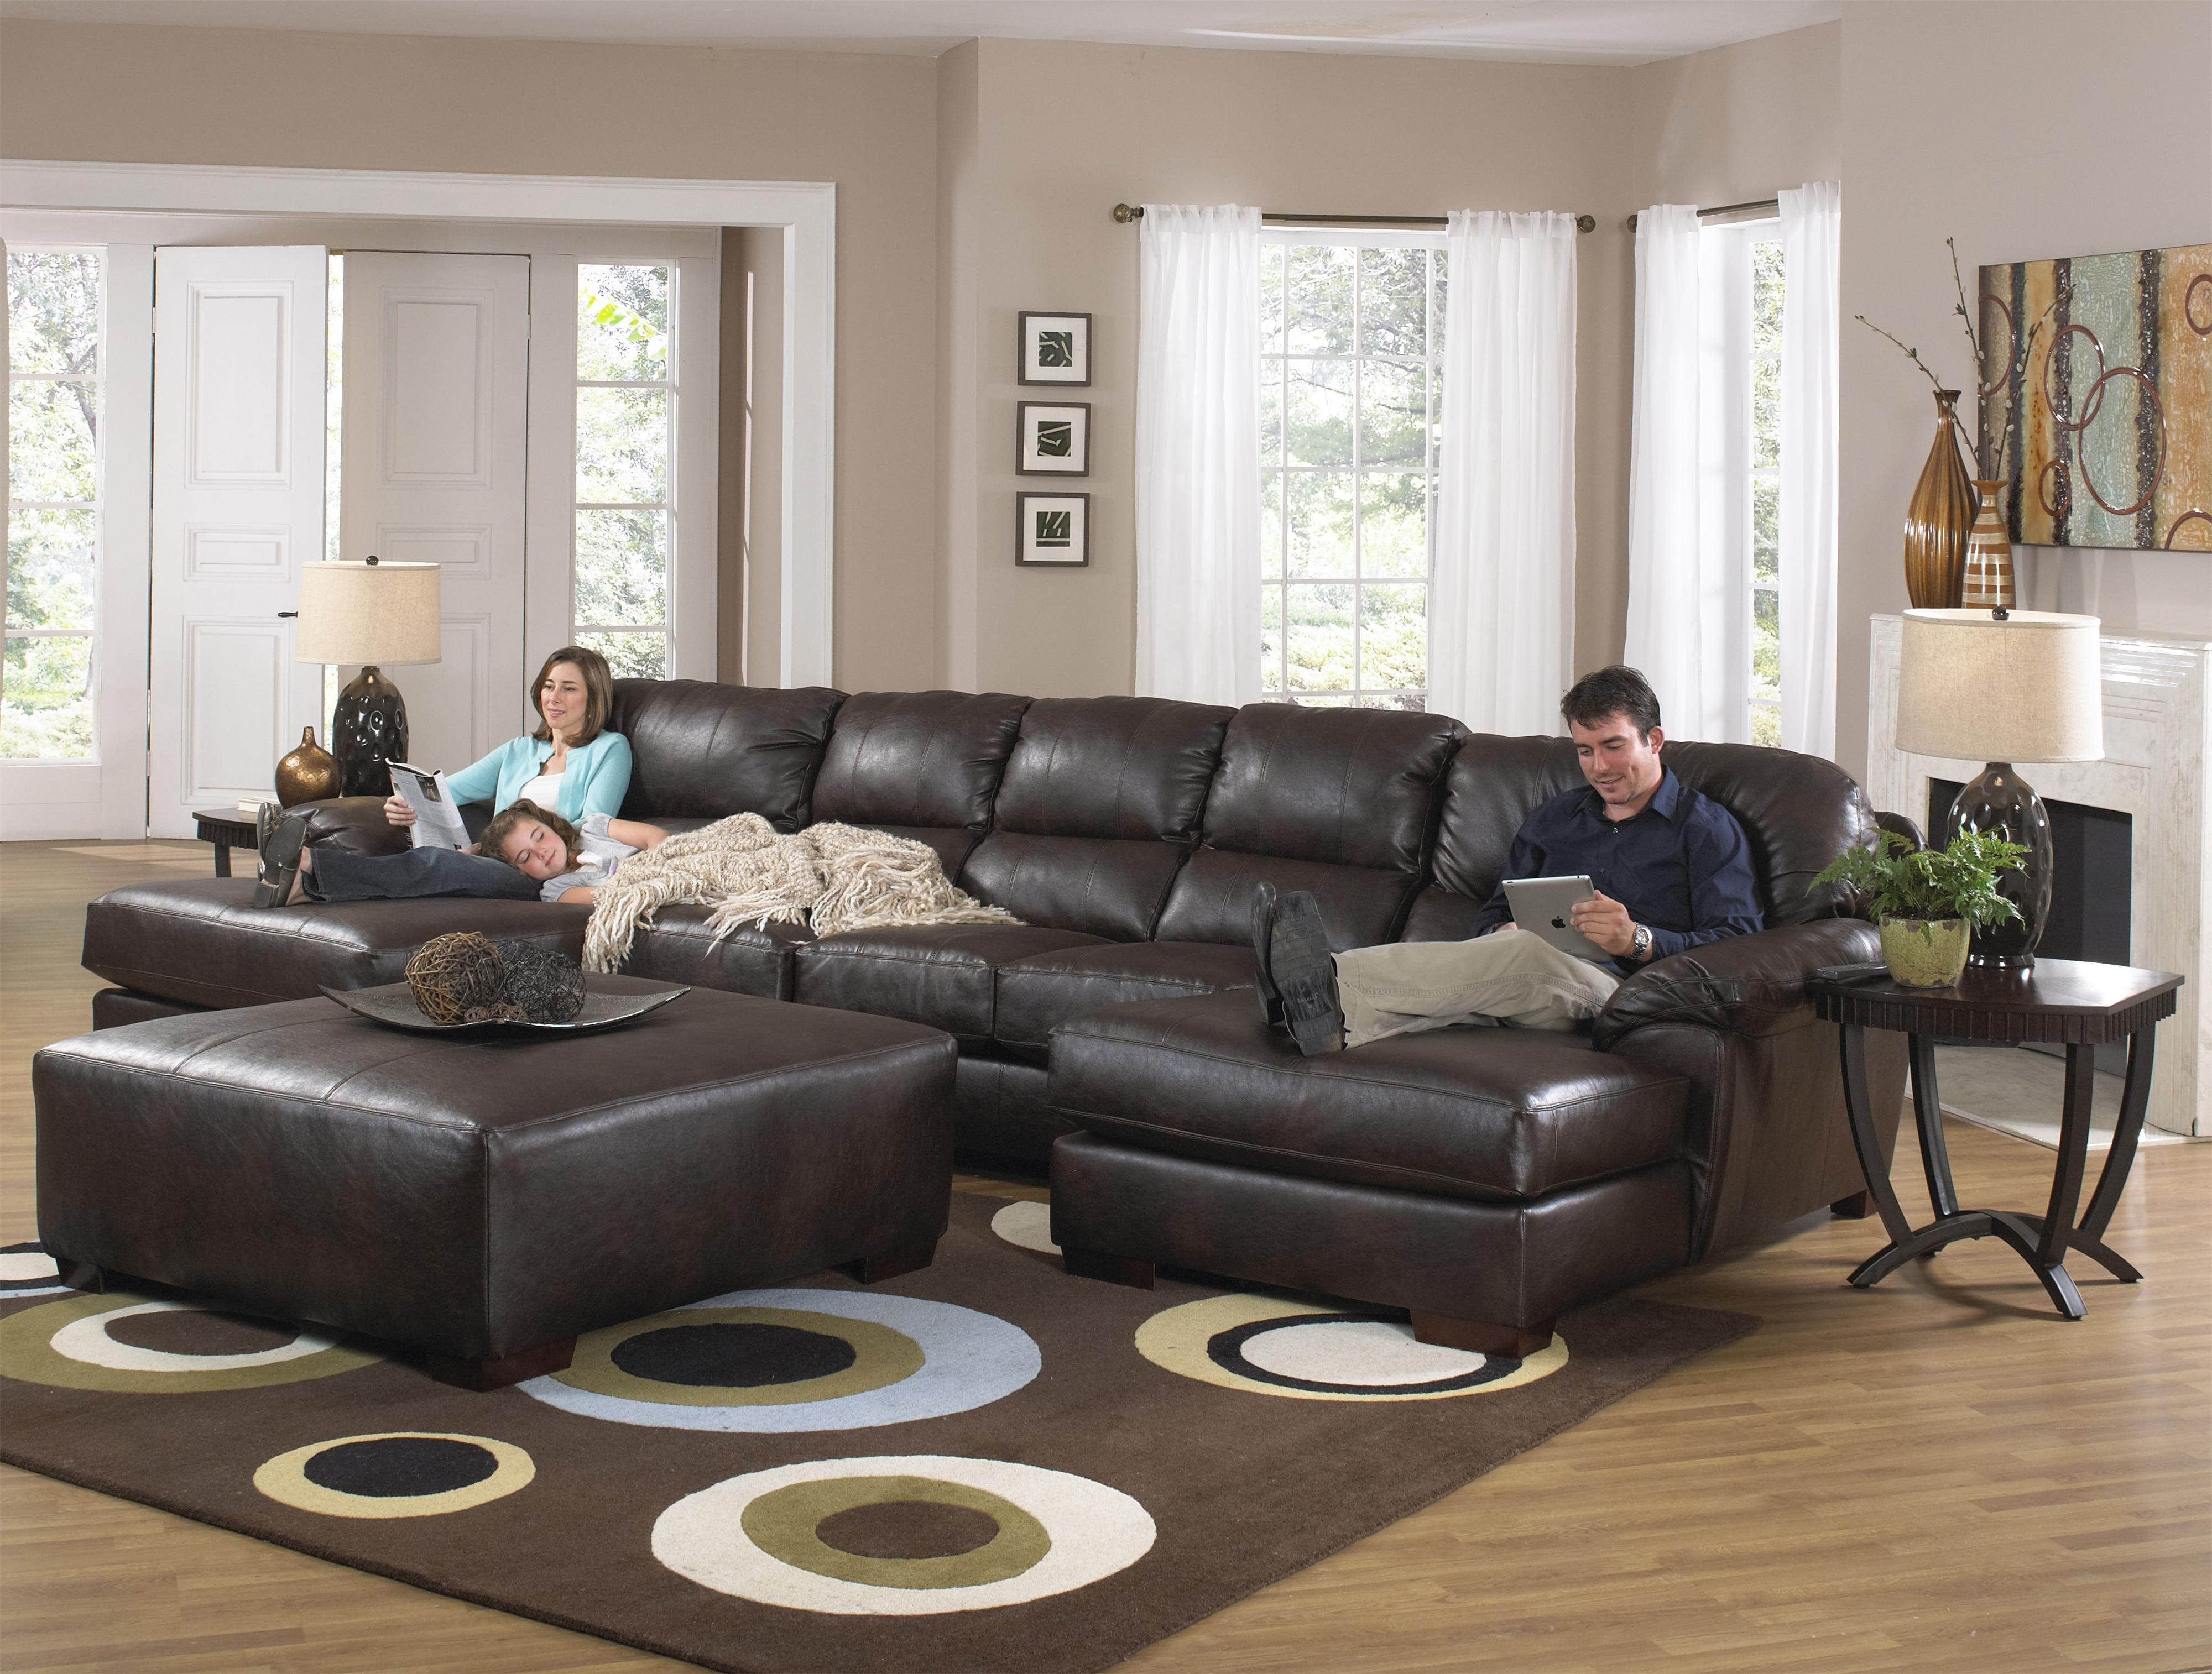 Furniture : Two Chaise Sectional Sofa With Five Total Seats With Leather Sectional Sofas With Ottoman (View 11 of 15)